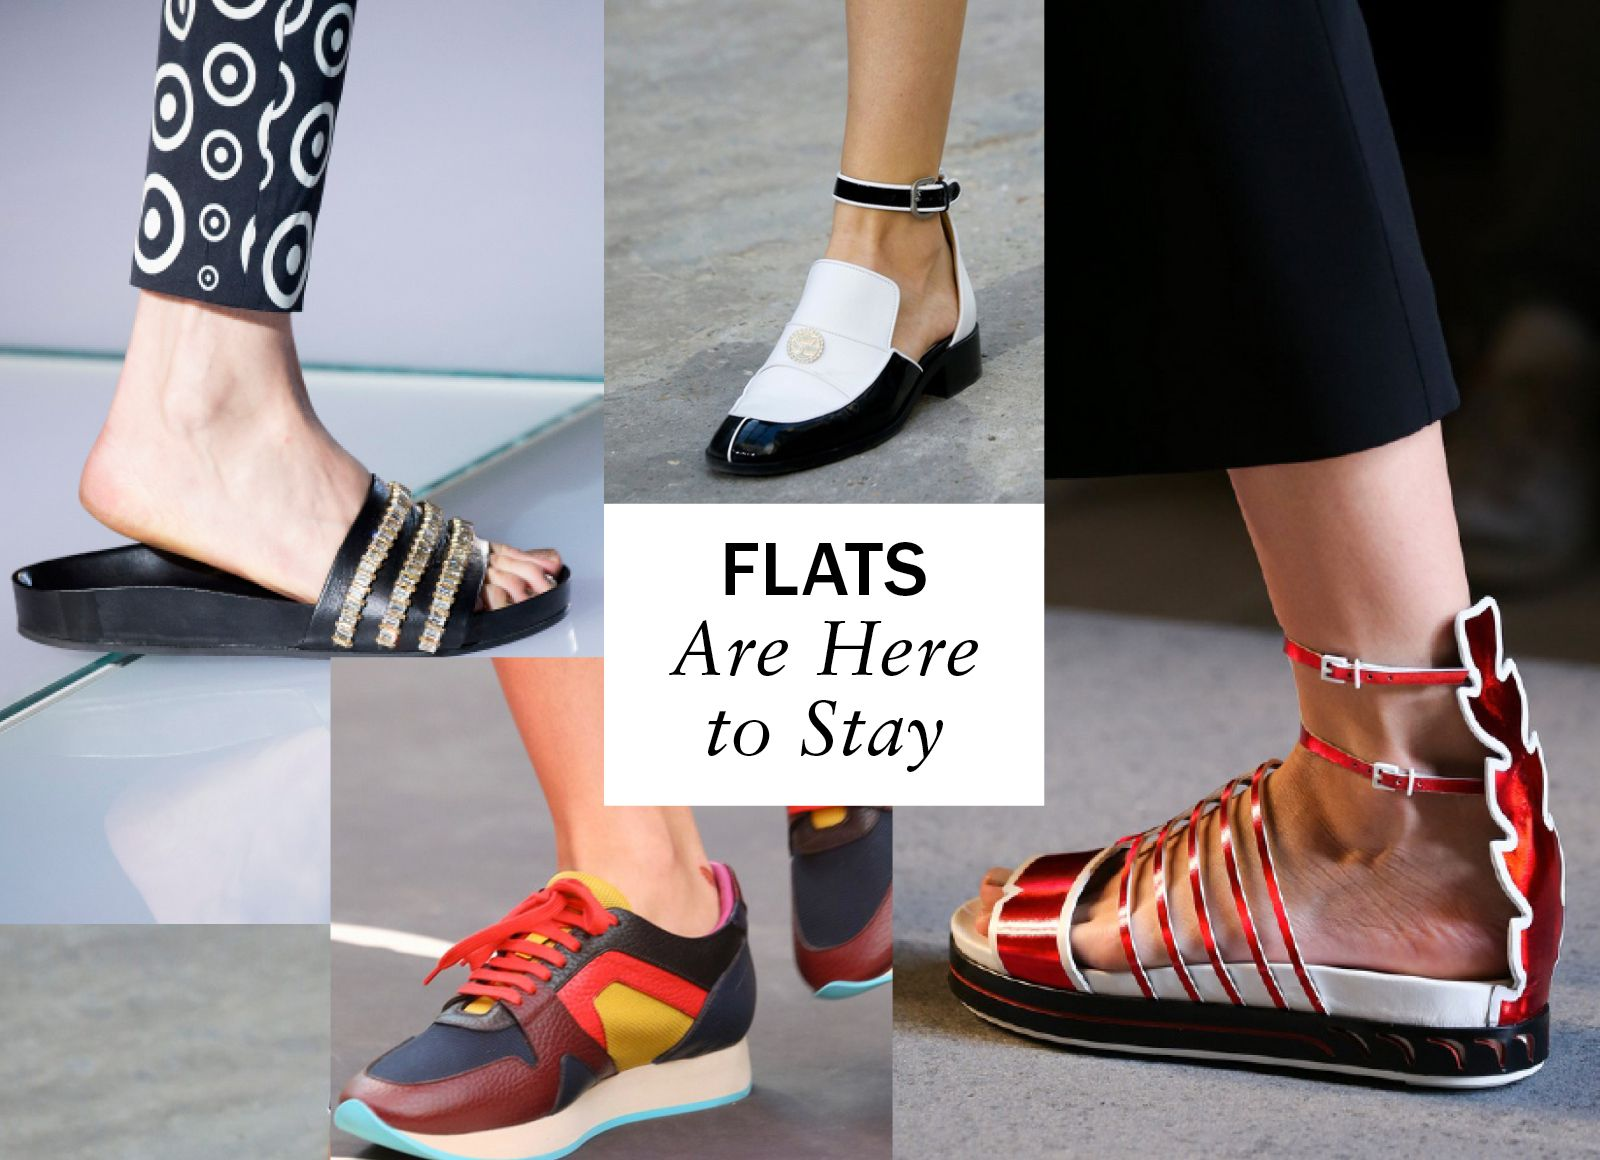 Fashion has been coming off vertiginous heels for a while now, but this season the message was loud and clear: Flats for every possible occasion are here to stay. -